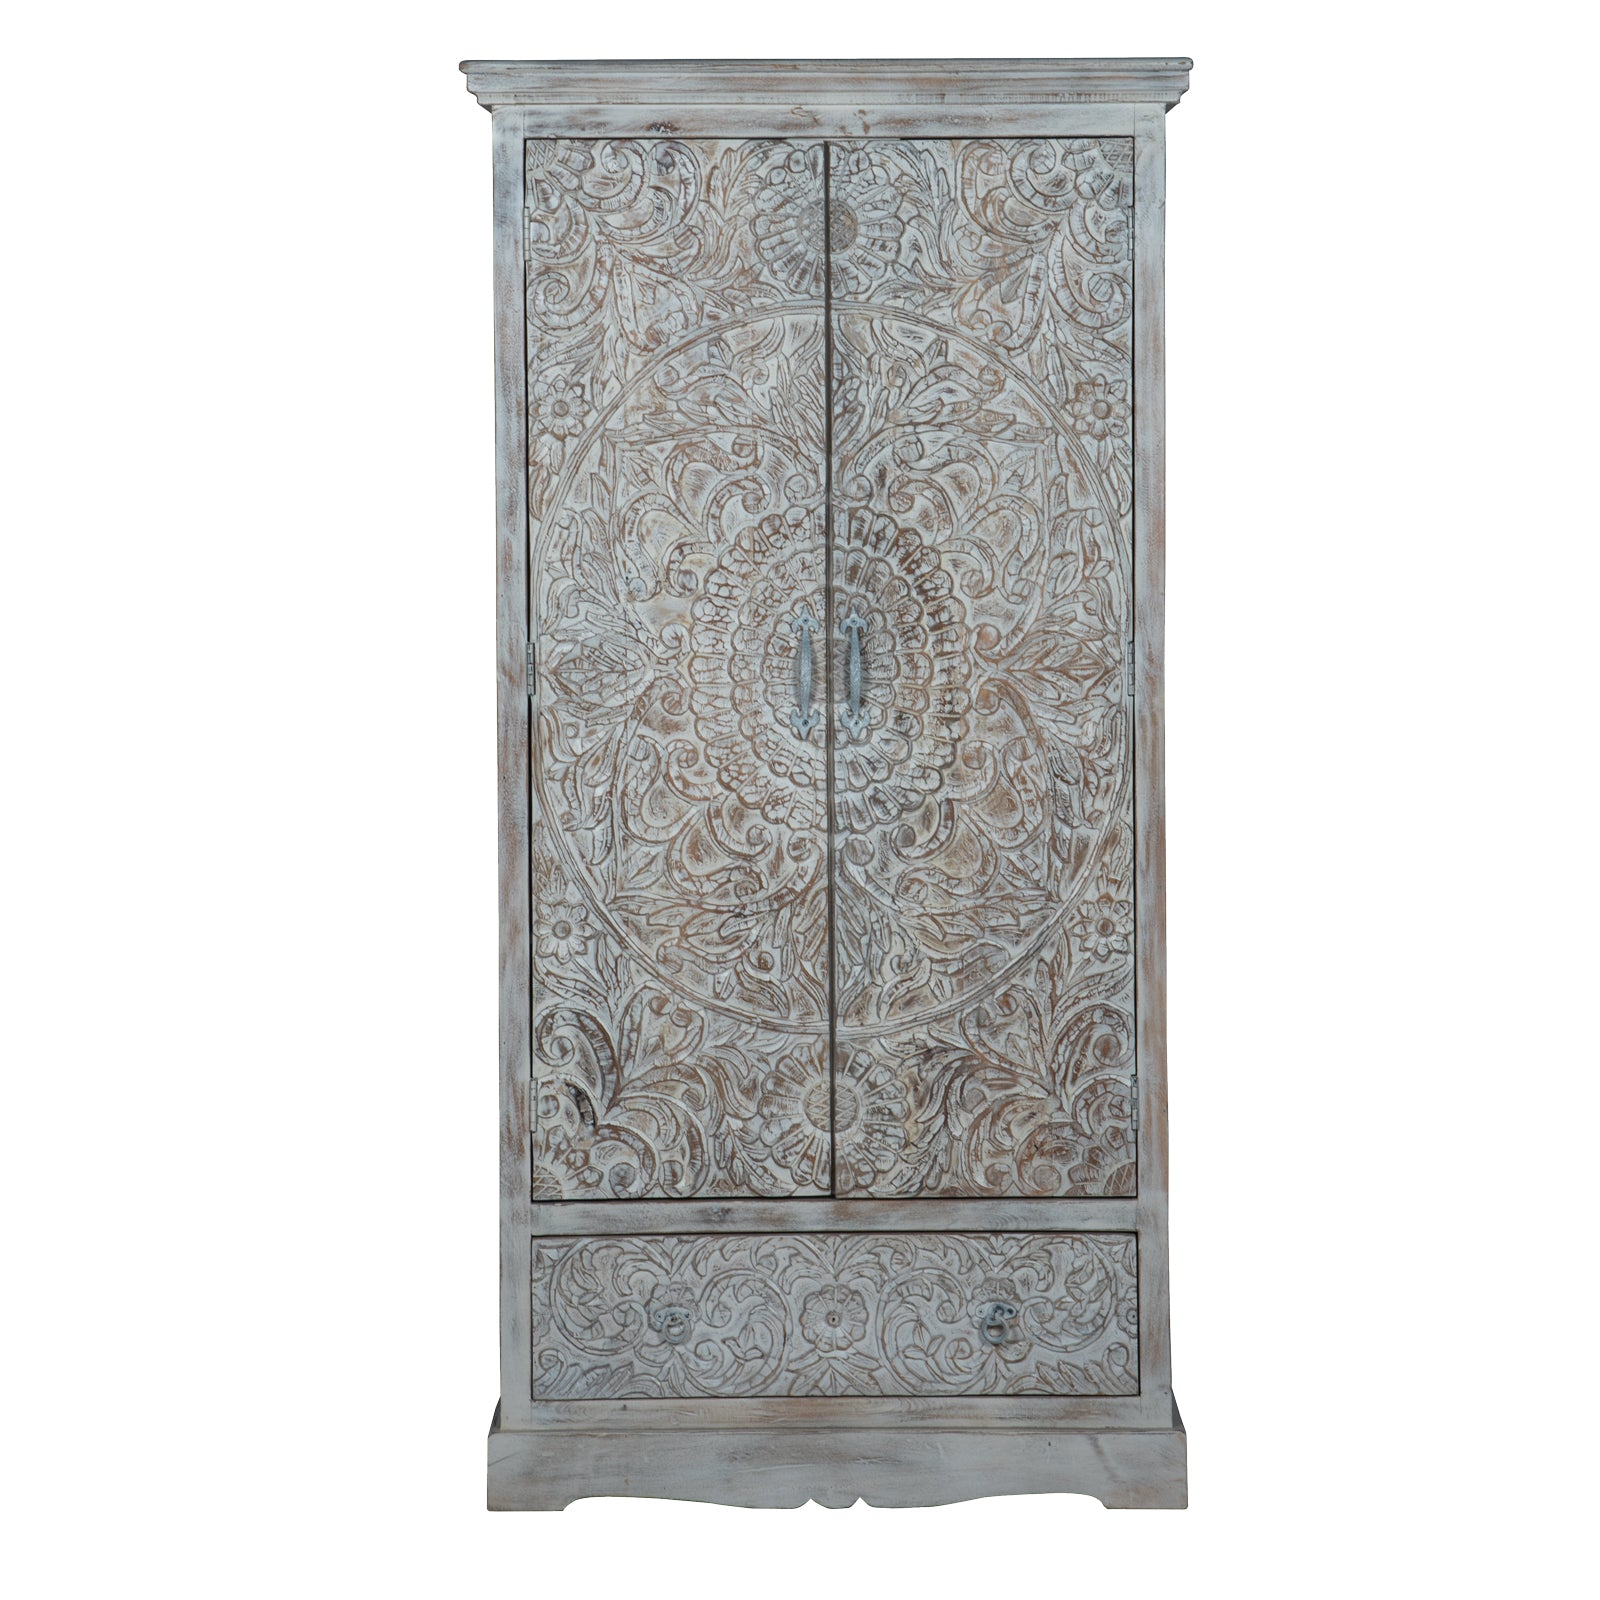 Maadze 2-Door White Wardrobe Armoire